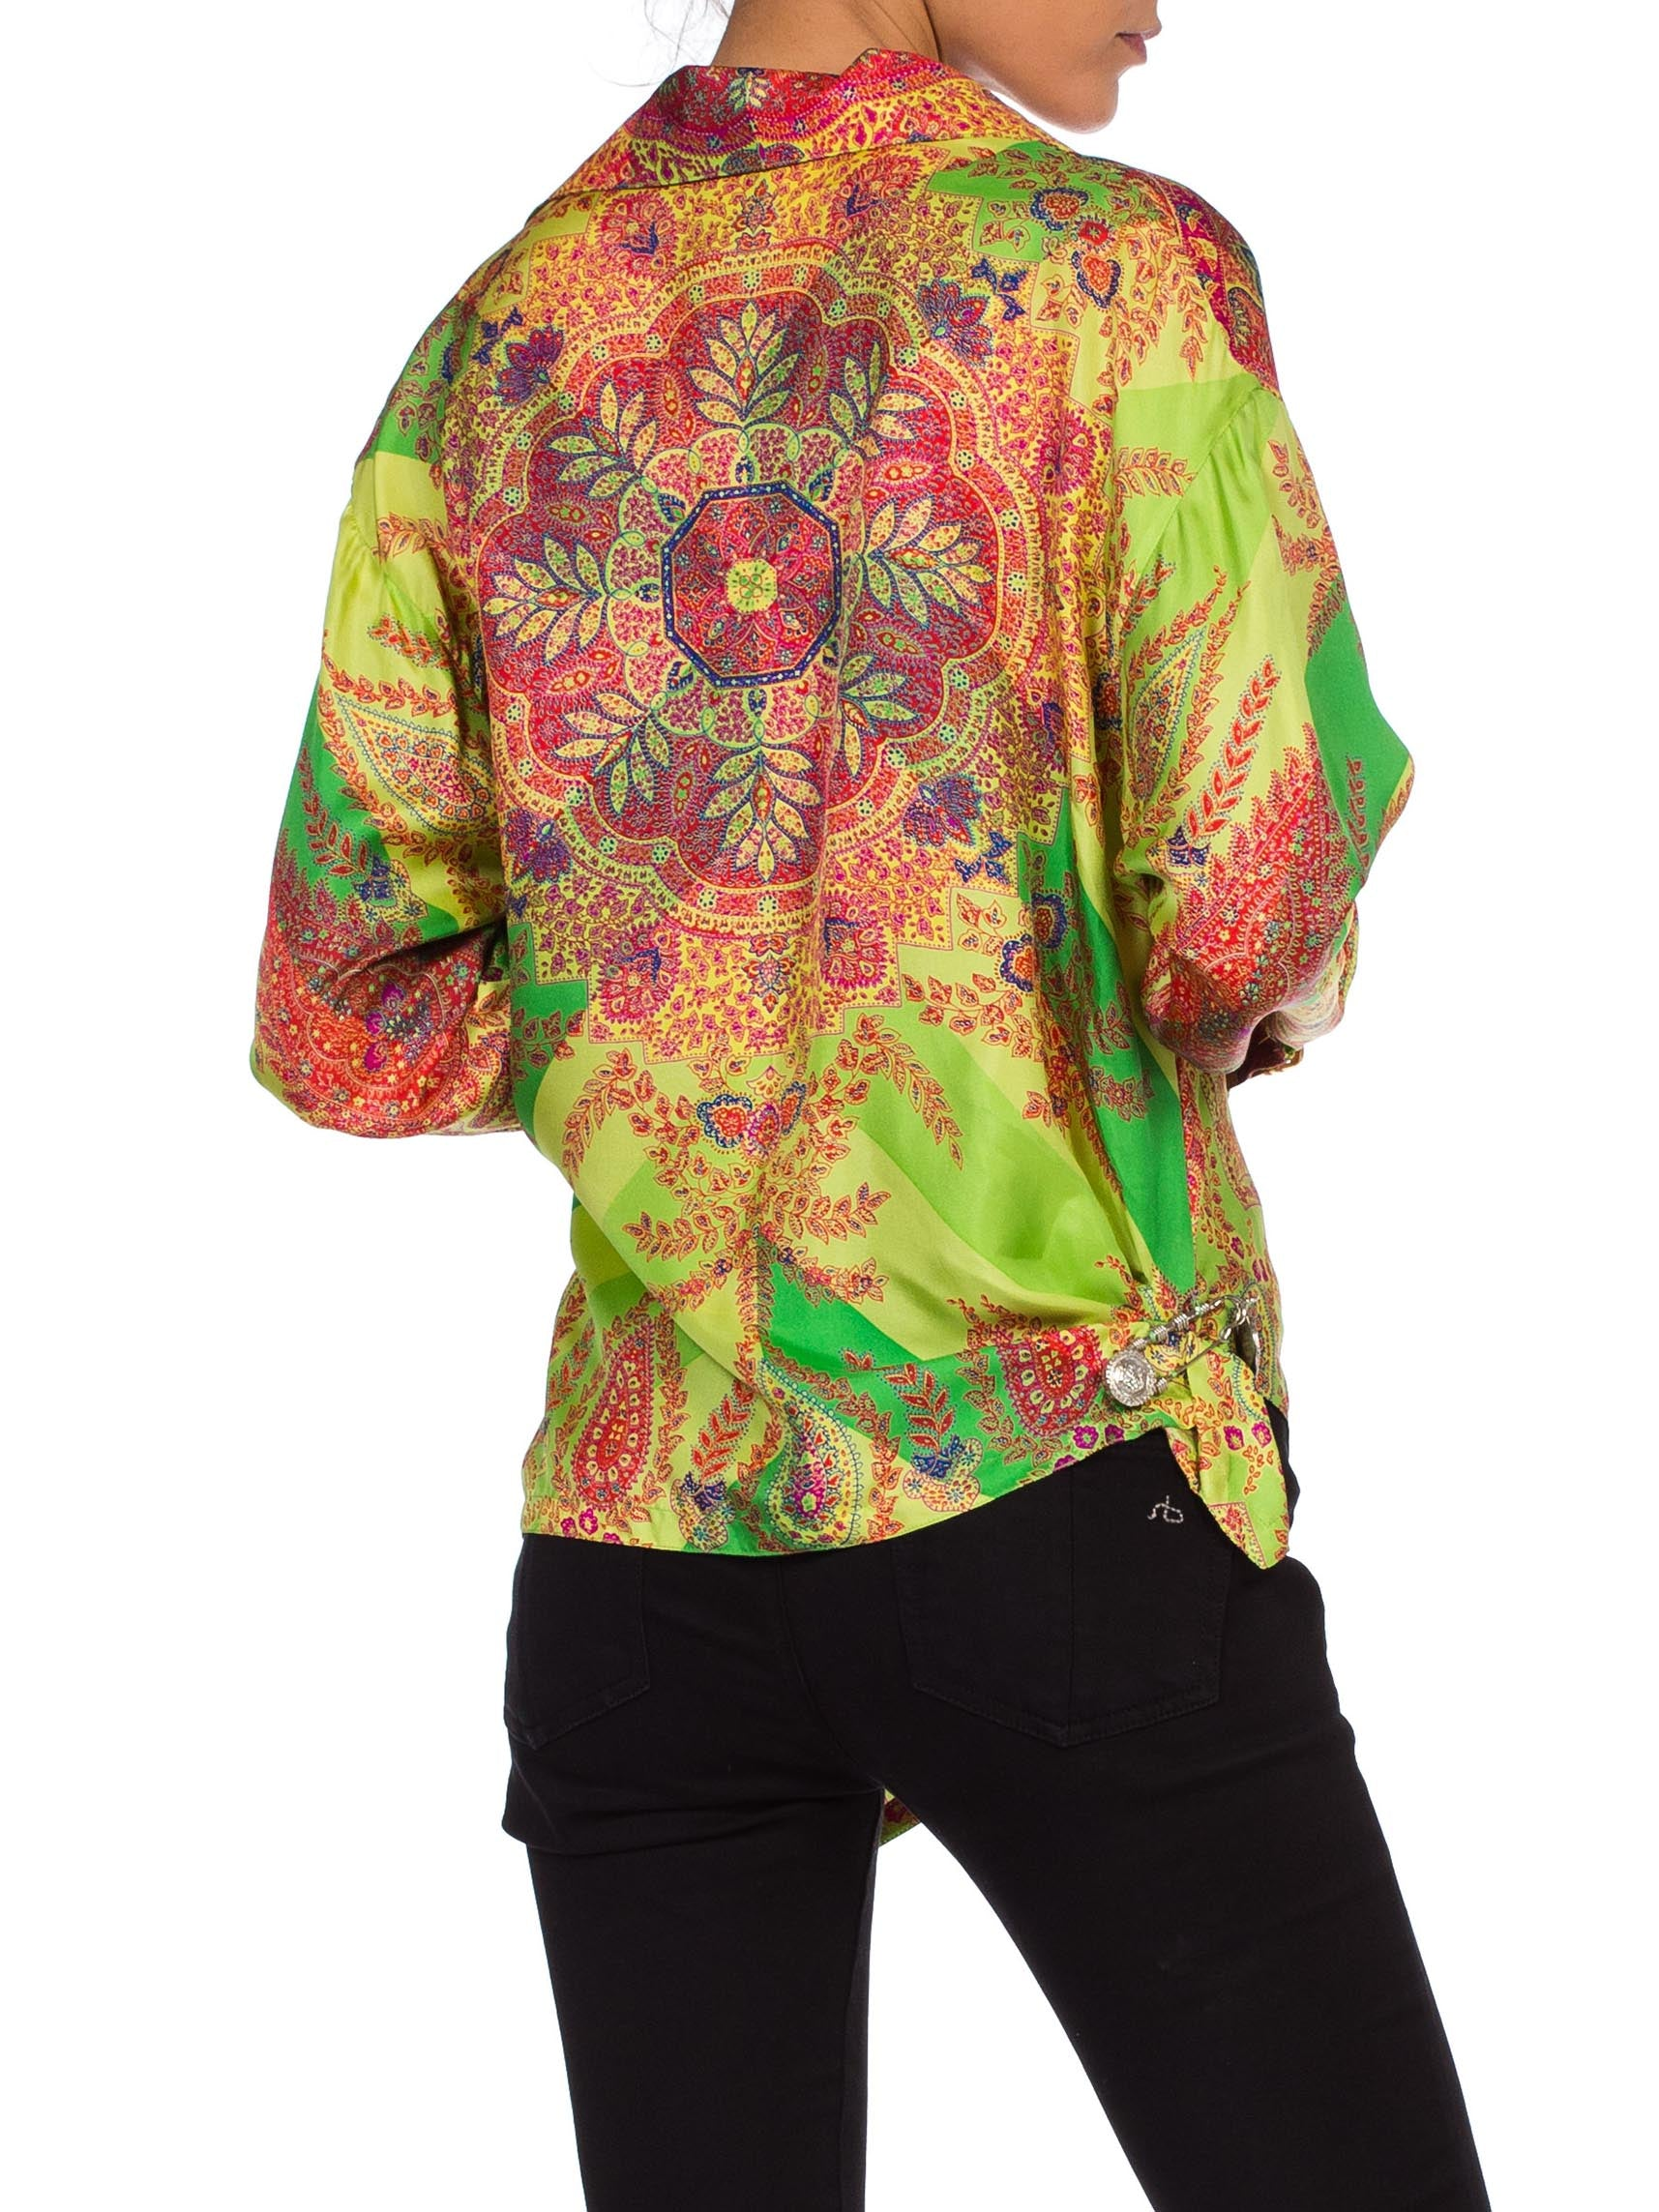 1990S GIANNI VERSACE Paisley Silk Twill Blouse From The Punk Medusa Safety Pin Collection